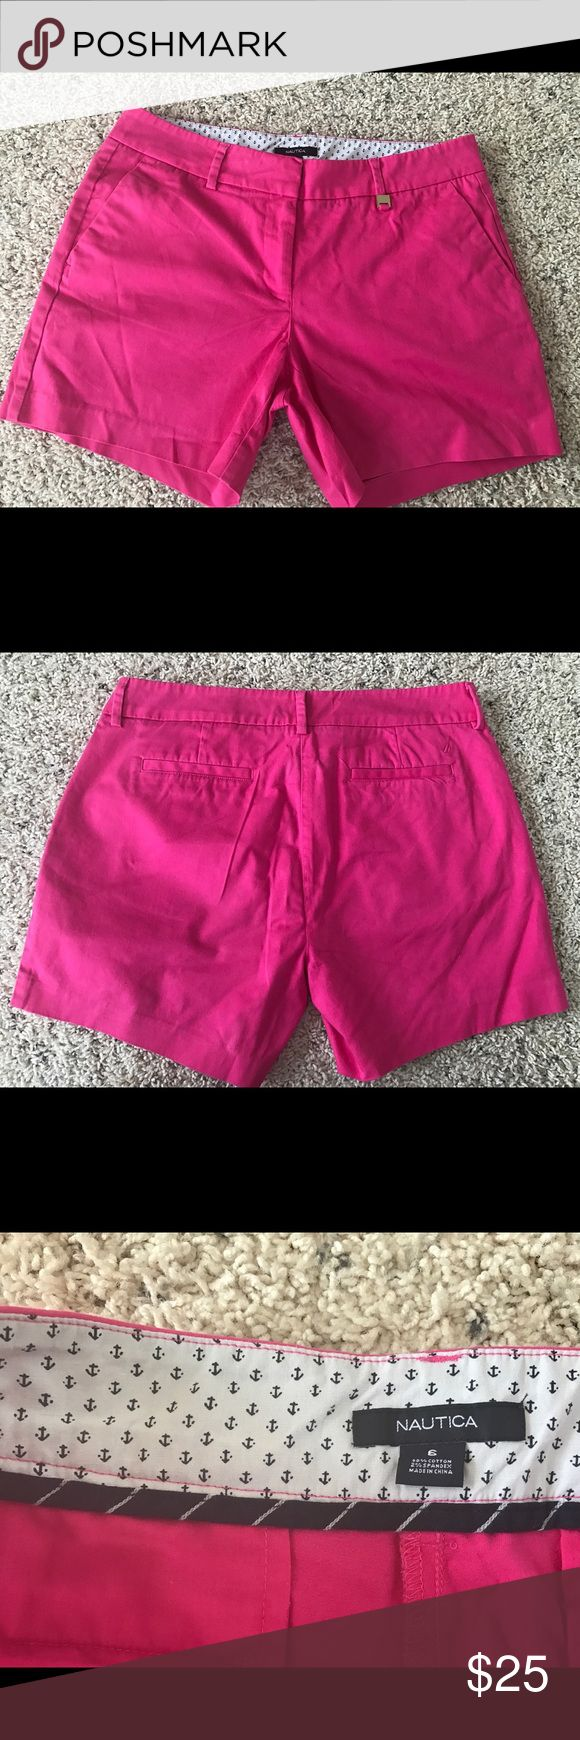 Nautica women's pink shorts size 6 Excellent condition Nautica pink shorts 6 inches inseam. Nautica Shorts